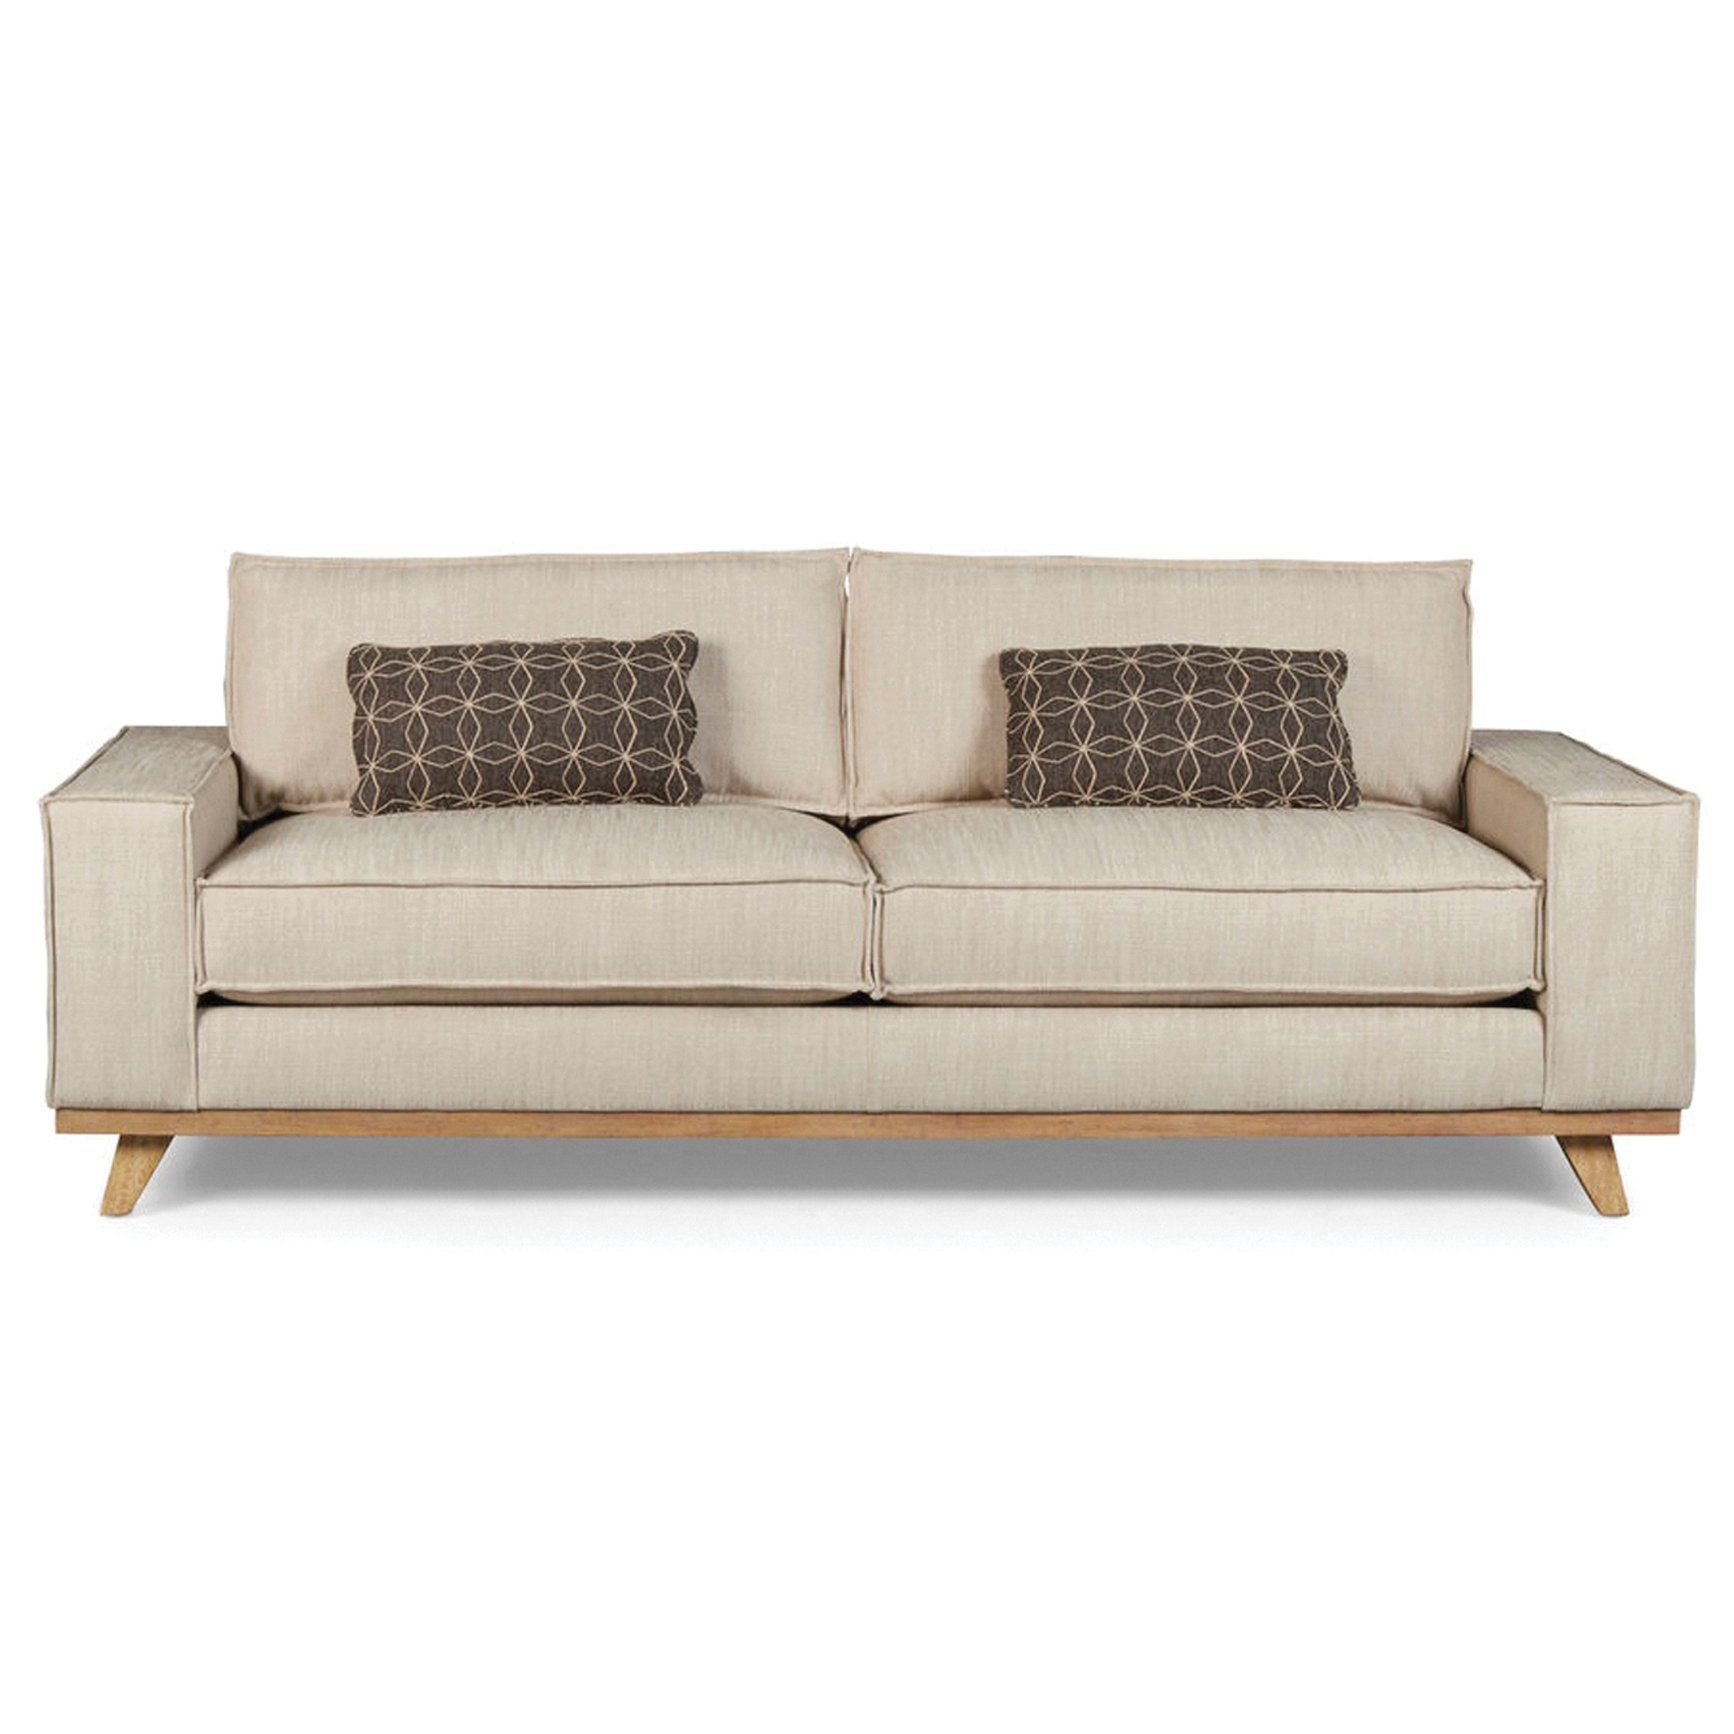 Art Furniture Epicentersaustin Upholstery Van Zandt Sofa  Discount Living Room Furniture